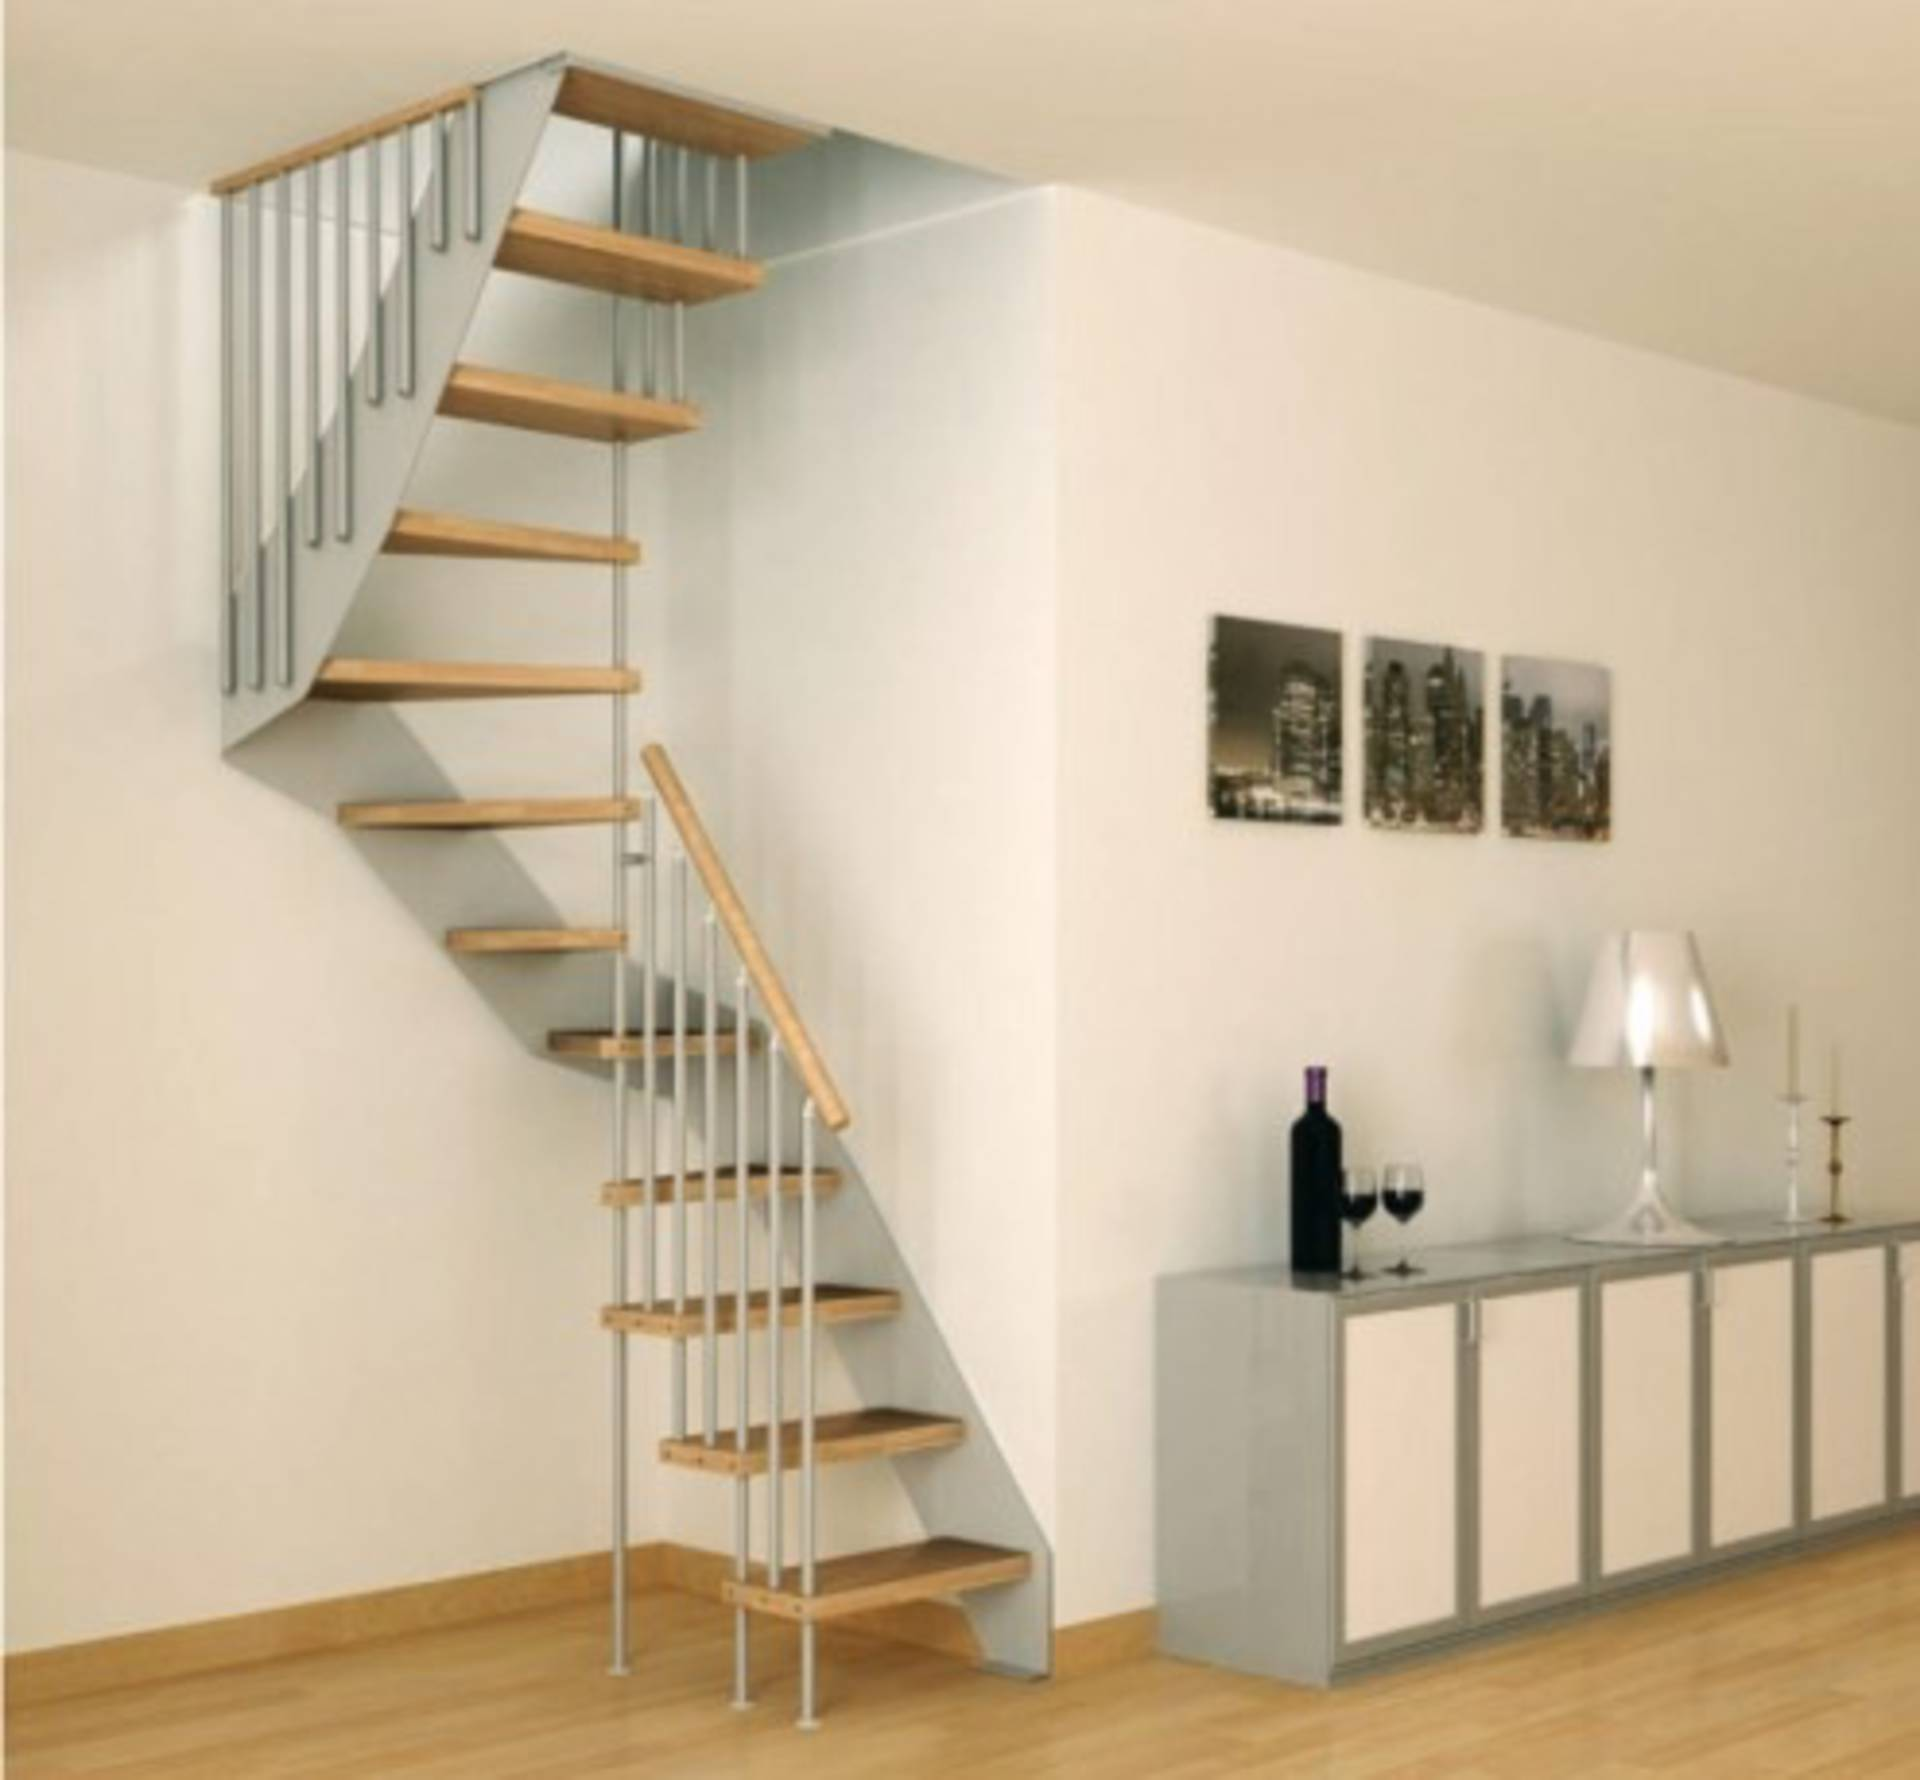 Stair design ideas for your home by Scale Nilur - Home Reviews